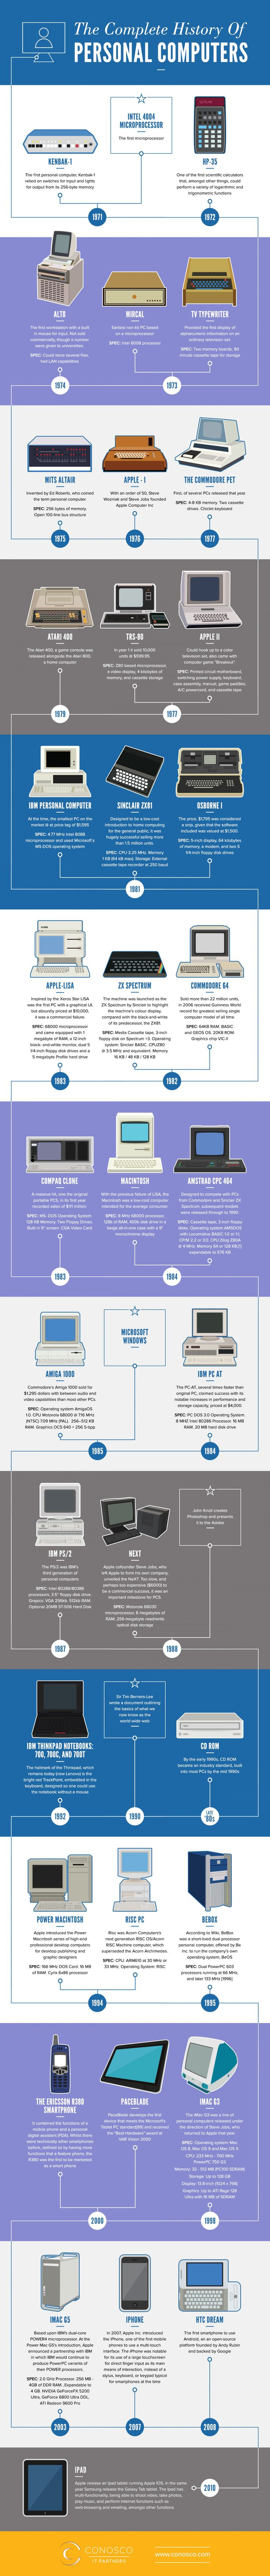 top ideas about computers keyboard shortcuts the complete history of personal computers infographic more